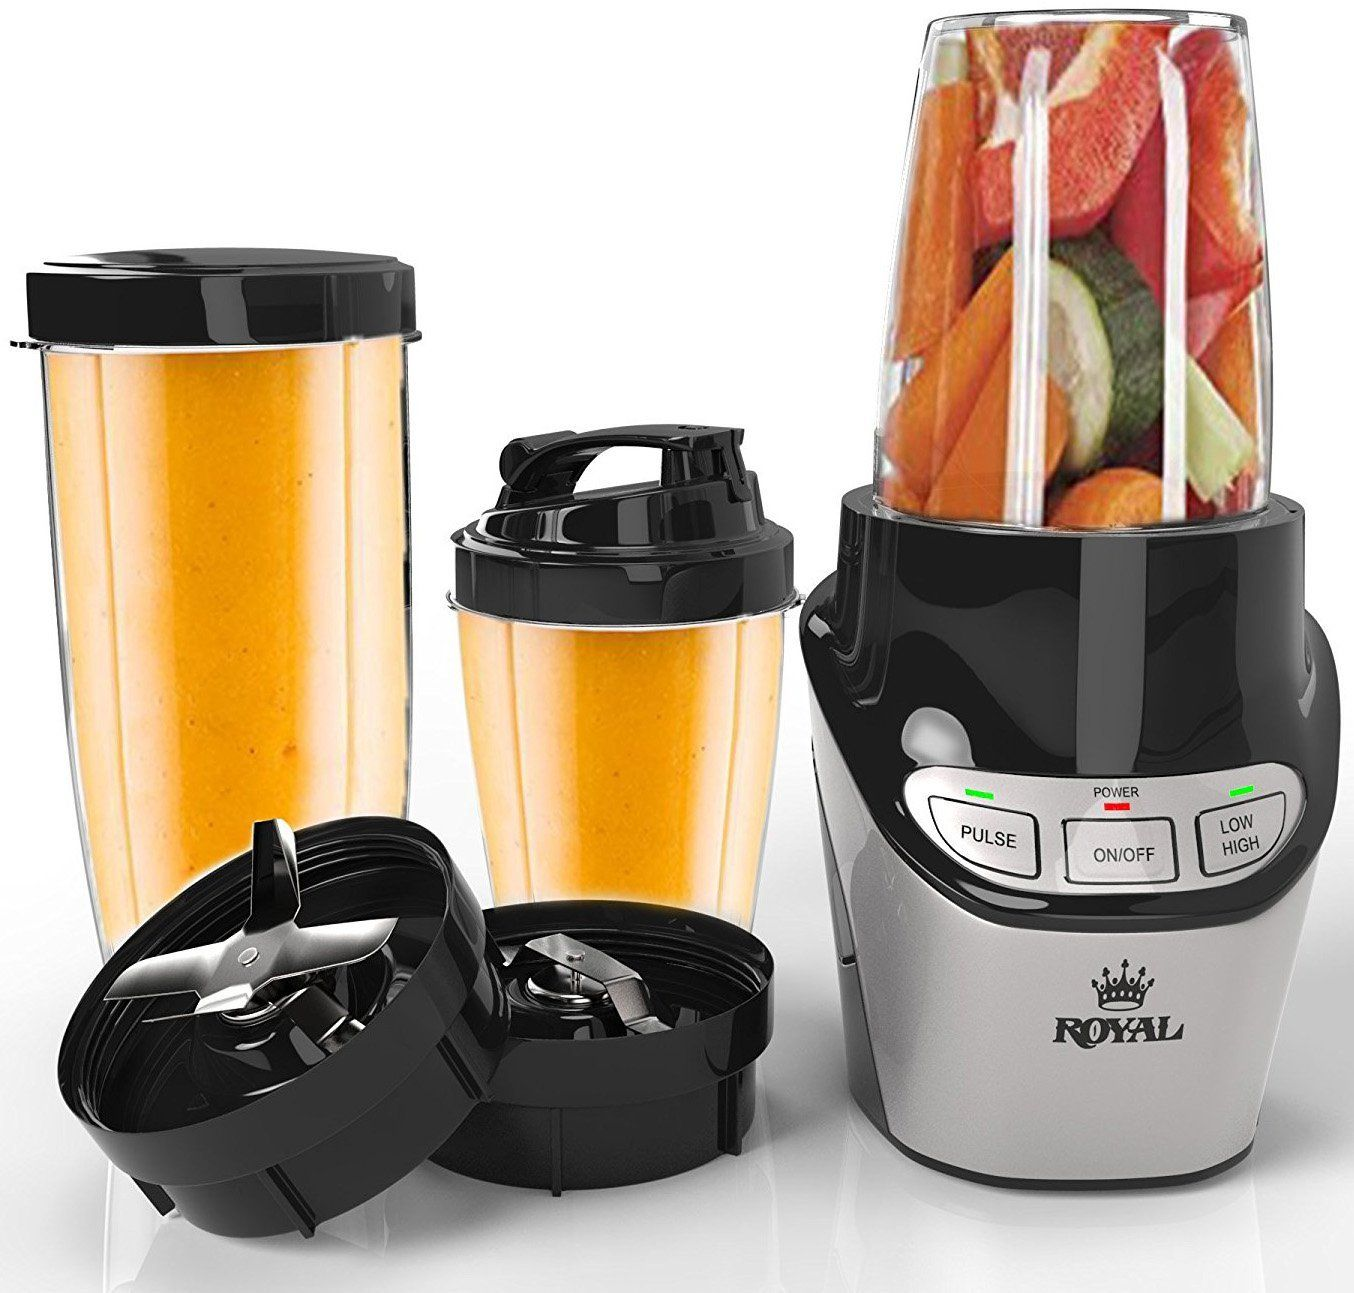 Royal Professional 8-Piece Blender Set - High-Speed Food Processor (1000  Watts) Grinder/Extractor Blade - Perfect for Smoothies, Shakes, and Juices  >>> Find ...